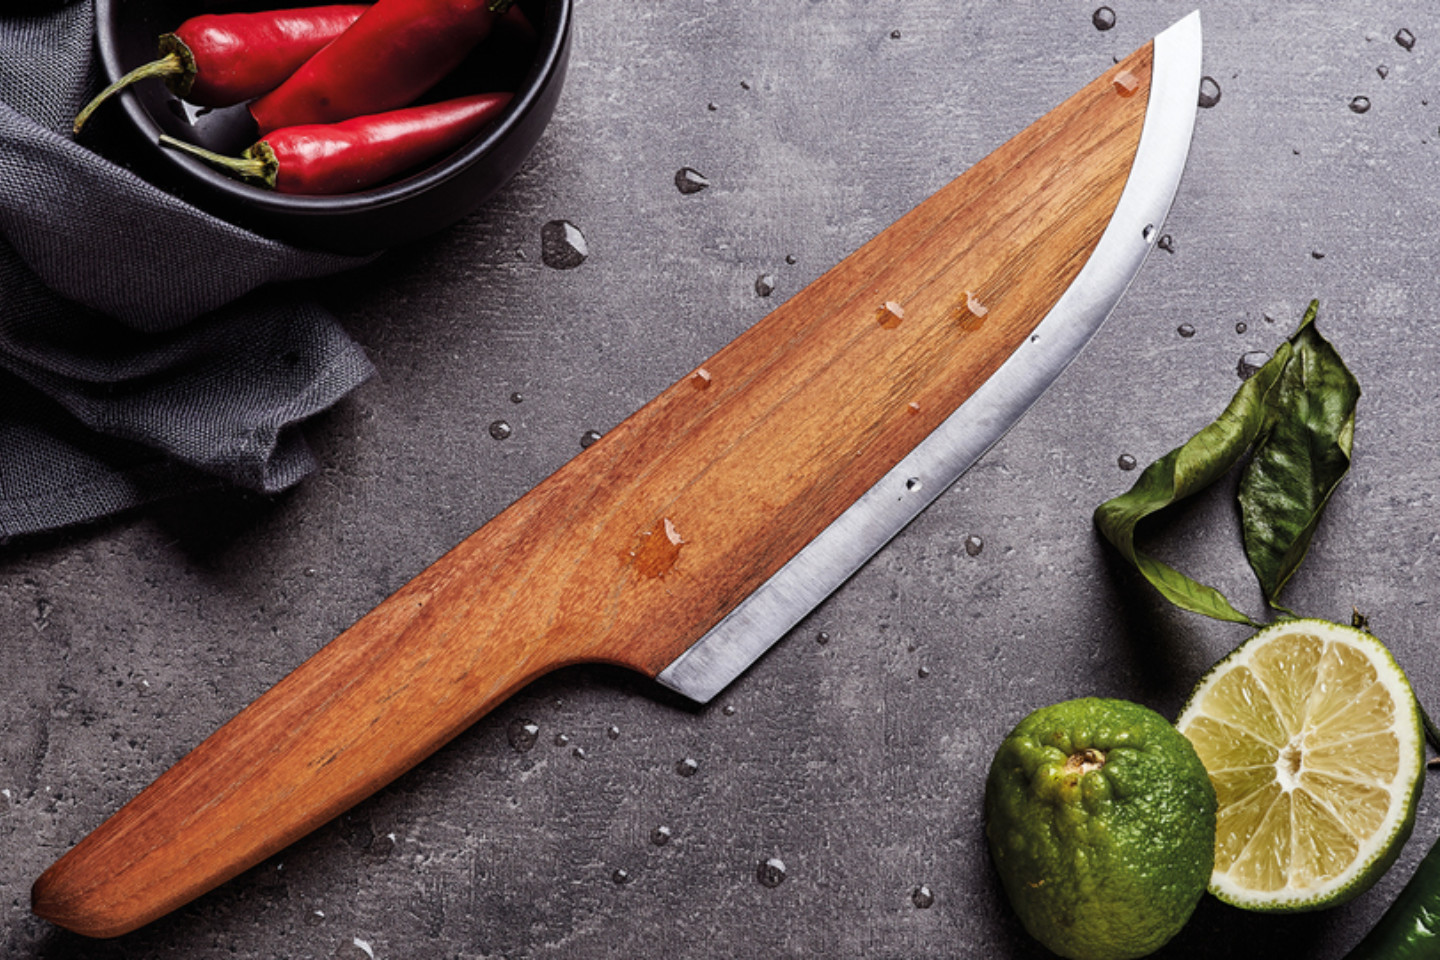 SKID - The First Wooden Chef Knife